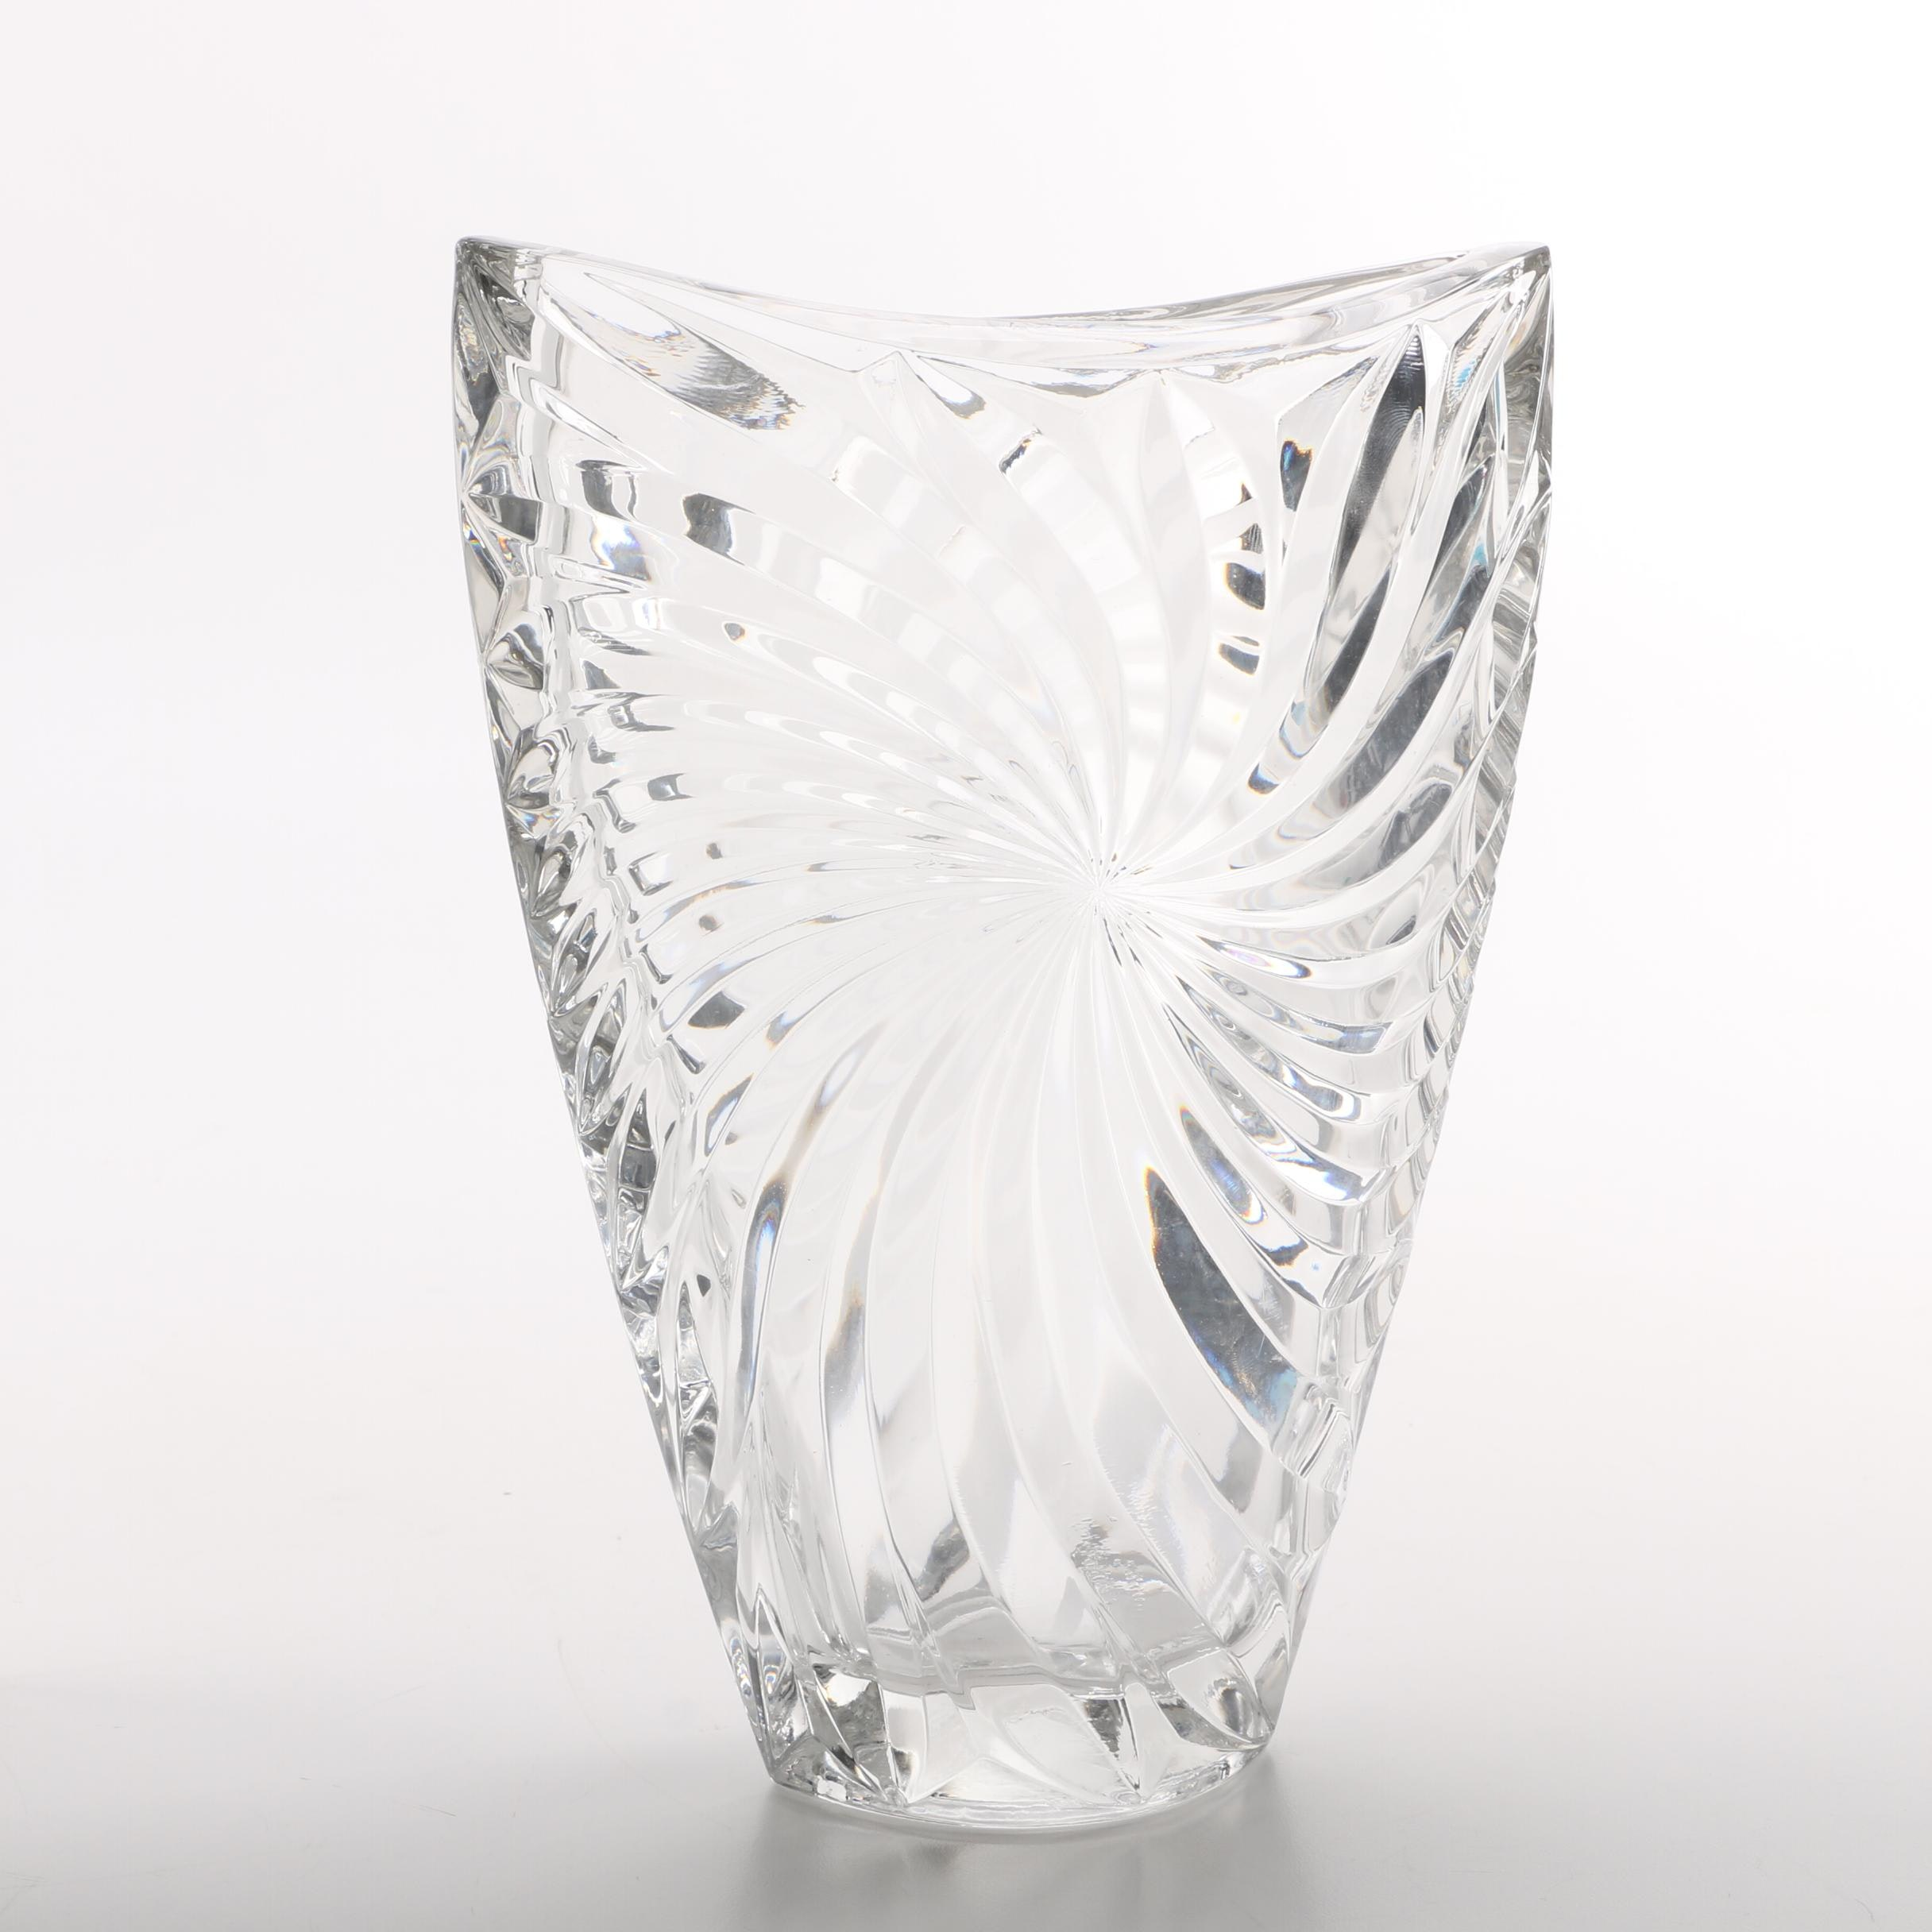 Mikasa Flared Crystal Vase with Swirled Motif